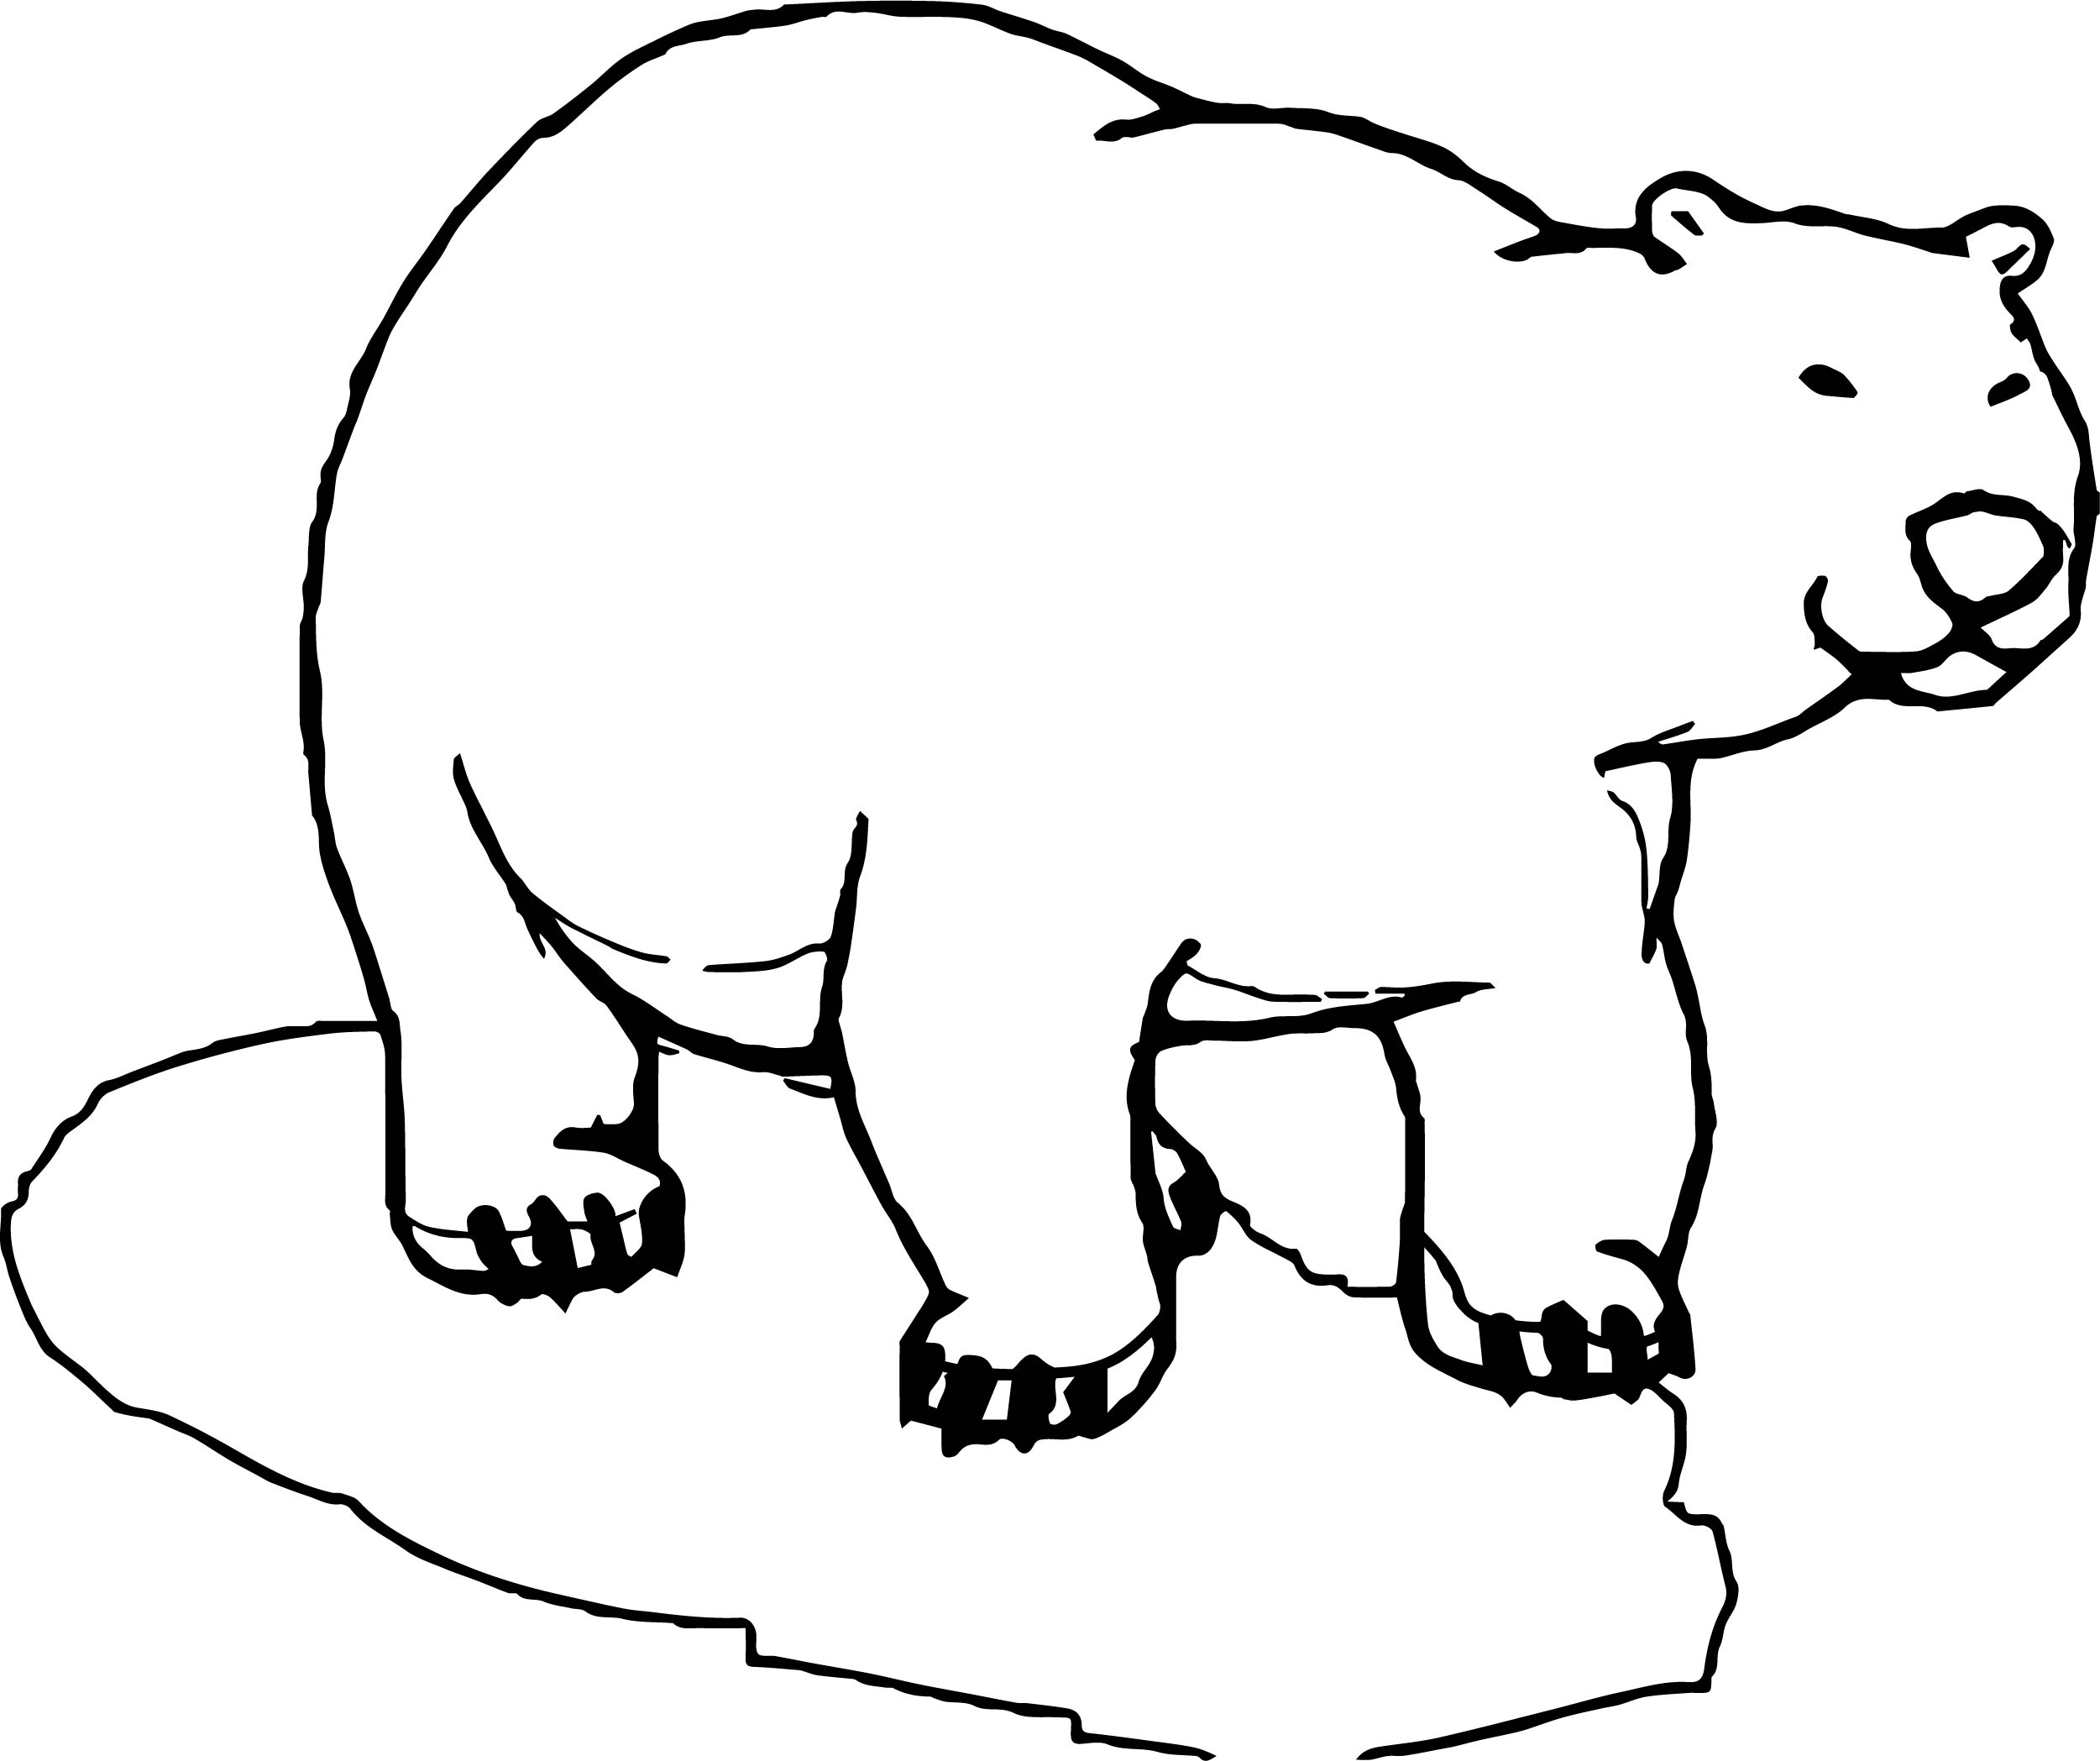 His Bear Coloring Page